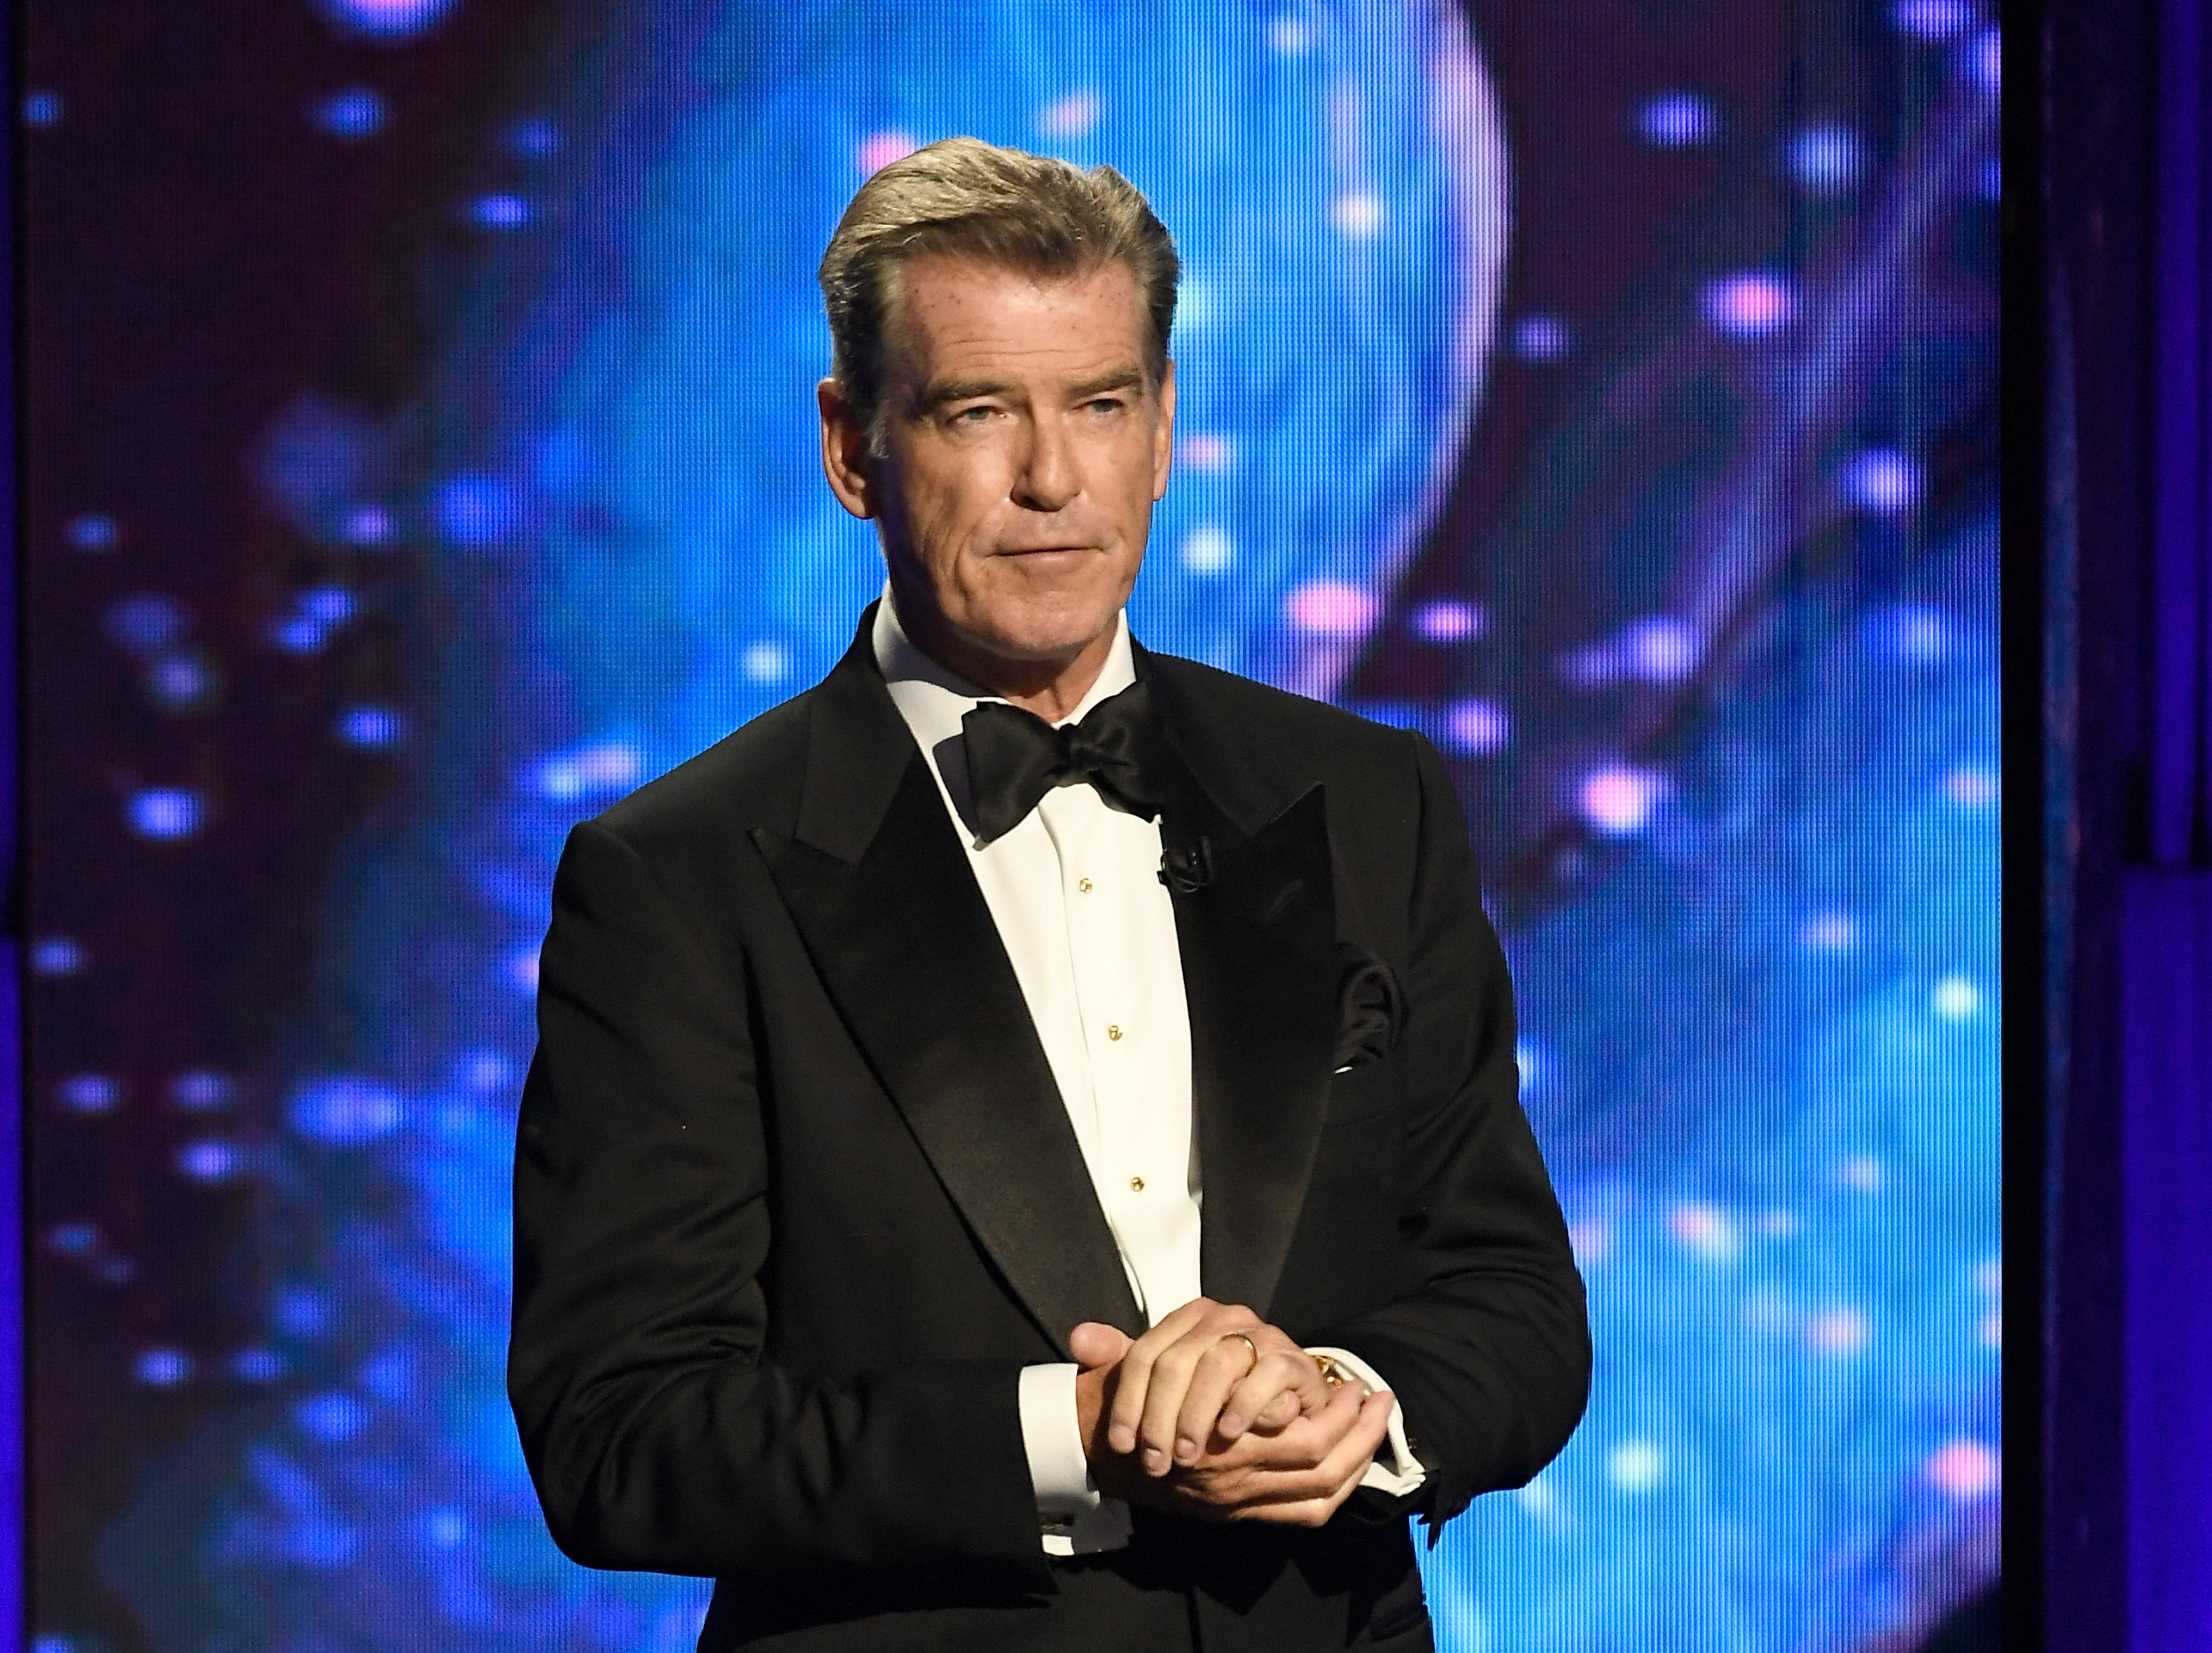 MOUNTAIN VIEW, CA - NOVEMBER 04:  Pierce Brosnan speaks onstage at the 2019 Breakthrough Prize at NASA Ames Research Center on November 4, 2018 in Mountain View, California.  (Photo by Steve Jennings/Getty Images for Breakthrough Prize) ORG XMIT: 775252236 ORIG FILE ID: 1057579118